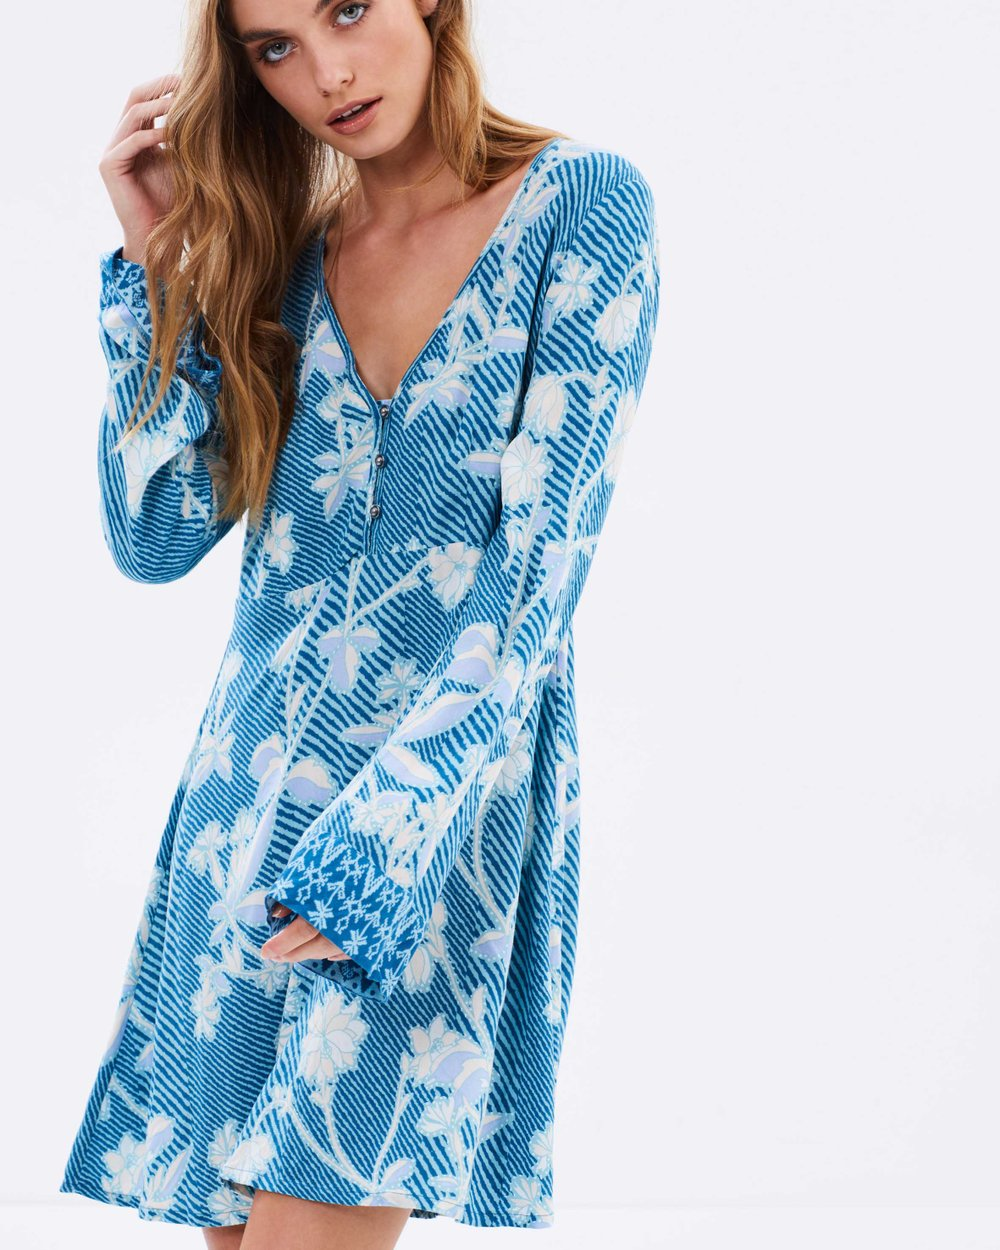 46c847ebb26 Sonisay Dress By Tigerlily Online The Iconic Australia